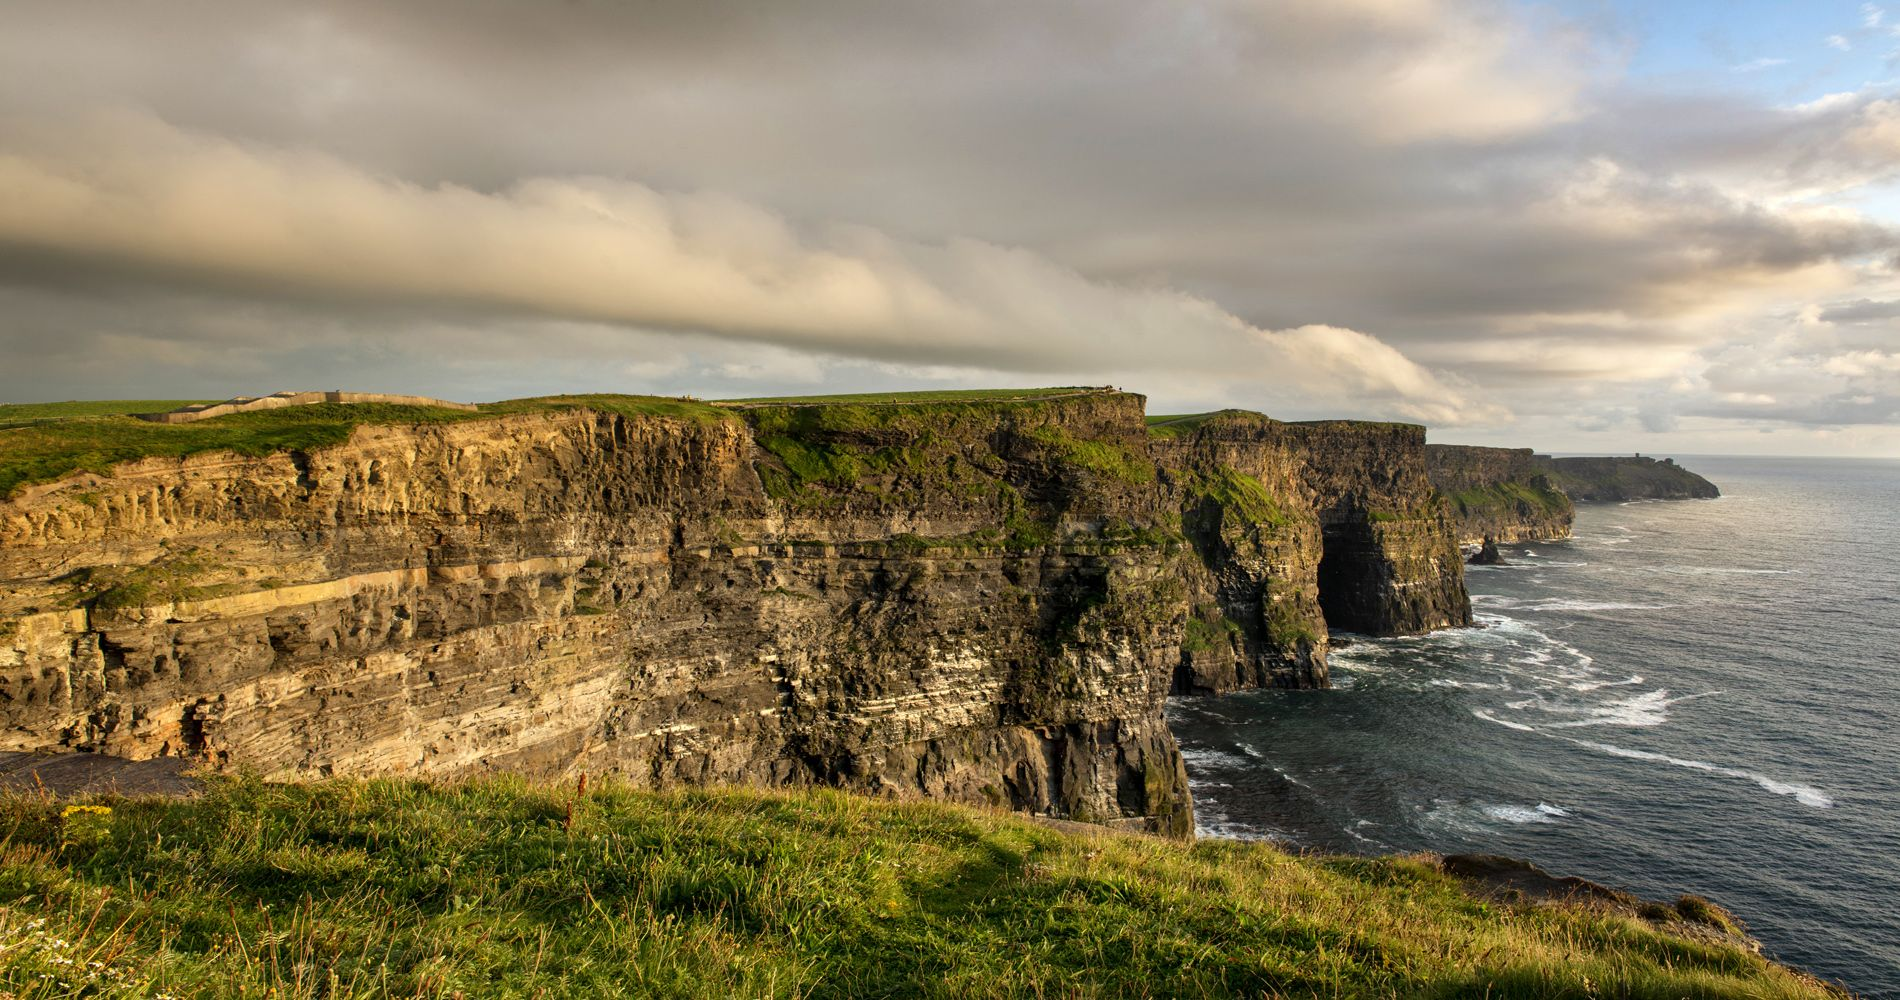 Results images for 2. Cliffs of Moher